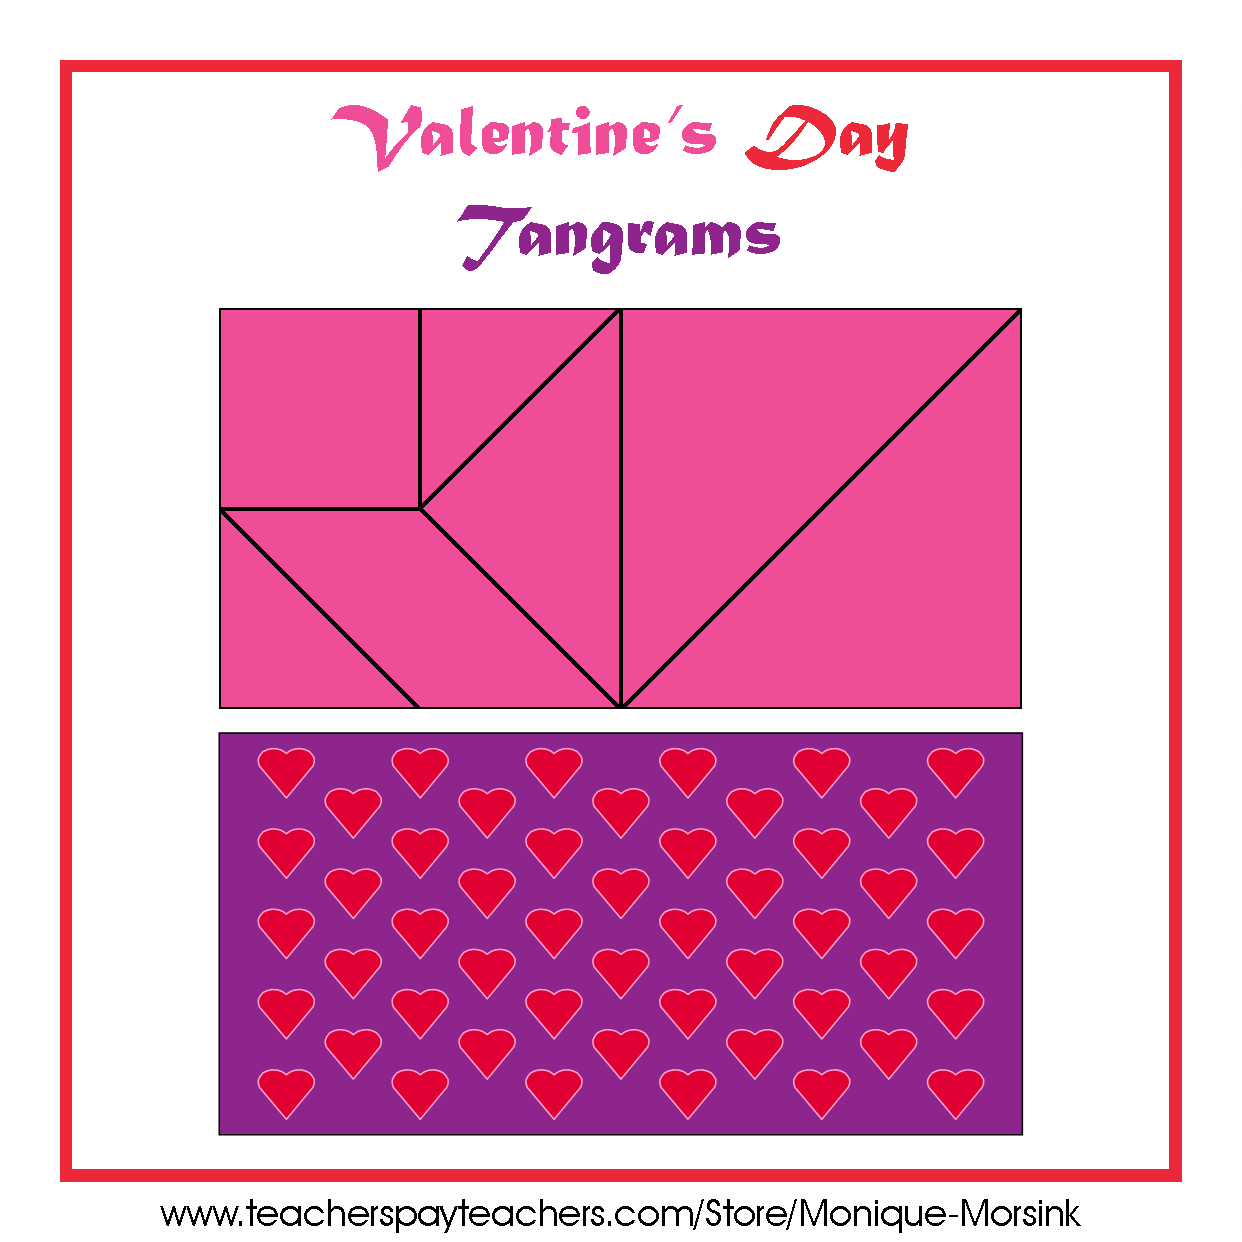 Valentine Day Bo Letter Templates on halloween letter template, food letter template, disney letter template, heart letter template, valentine writing template, birthday letter template, valentines day love letters, funeral letter template, congratulations letter template, travel letter template, thanksgiving letter template, pregnancy letter template, retirement letter template, patriotic letter template, football letter template, winter letter template, romantic letter template, spring letter template, thank you letter template, love letter background template,